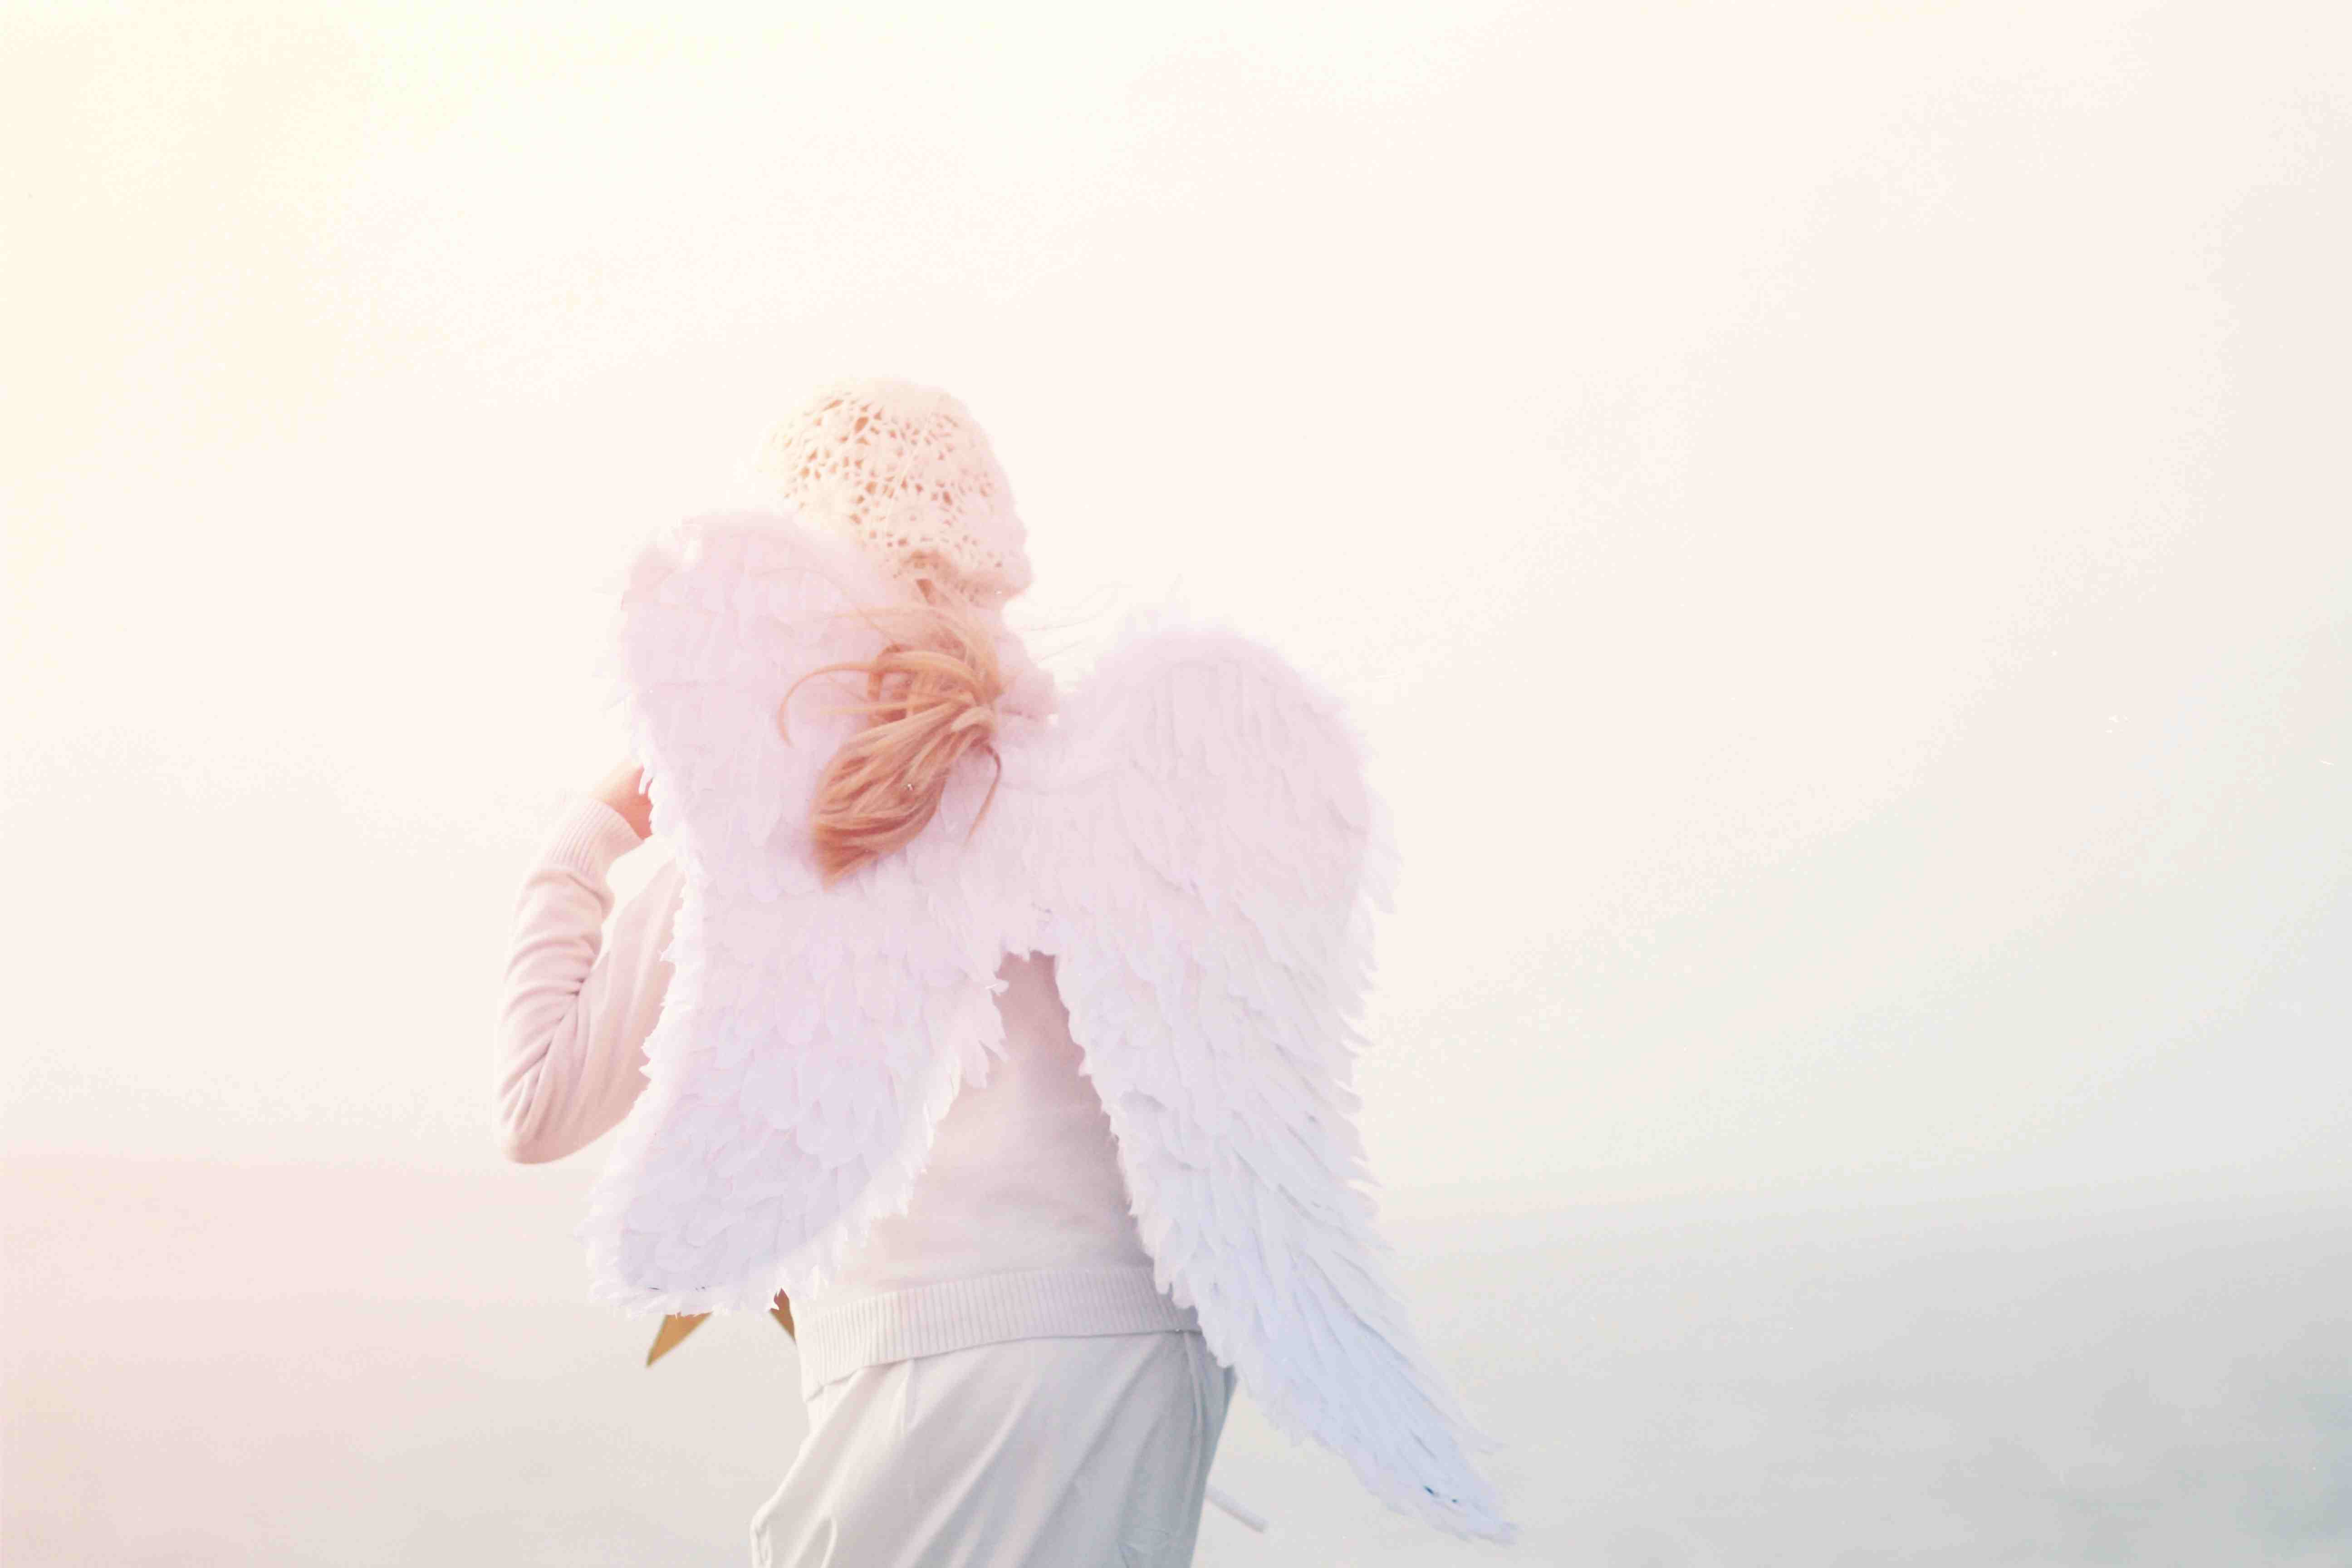 Rear View Of Girl In Angel Costume Against Sky